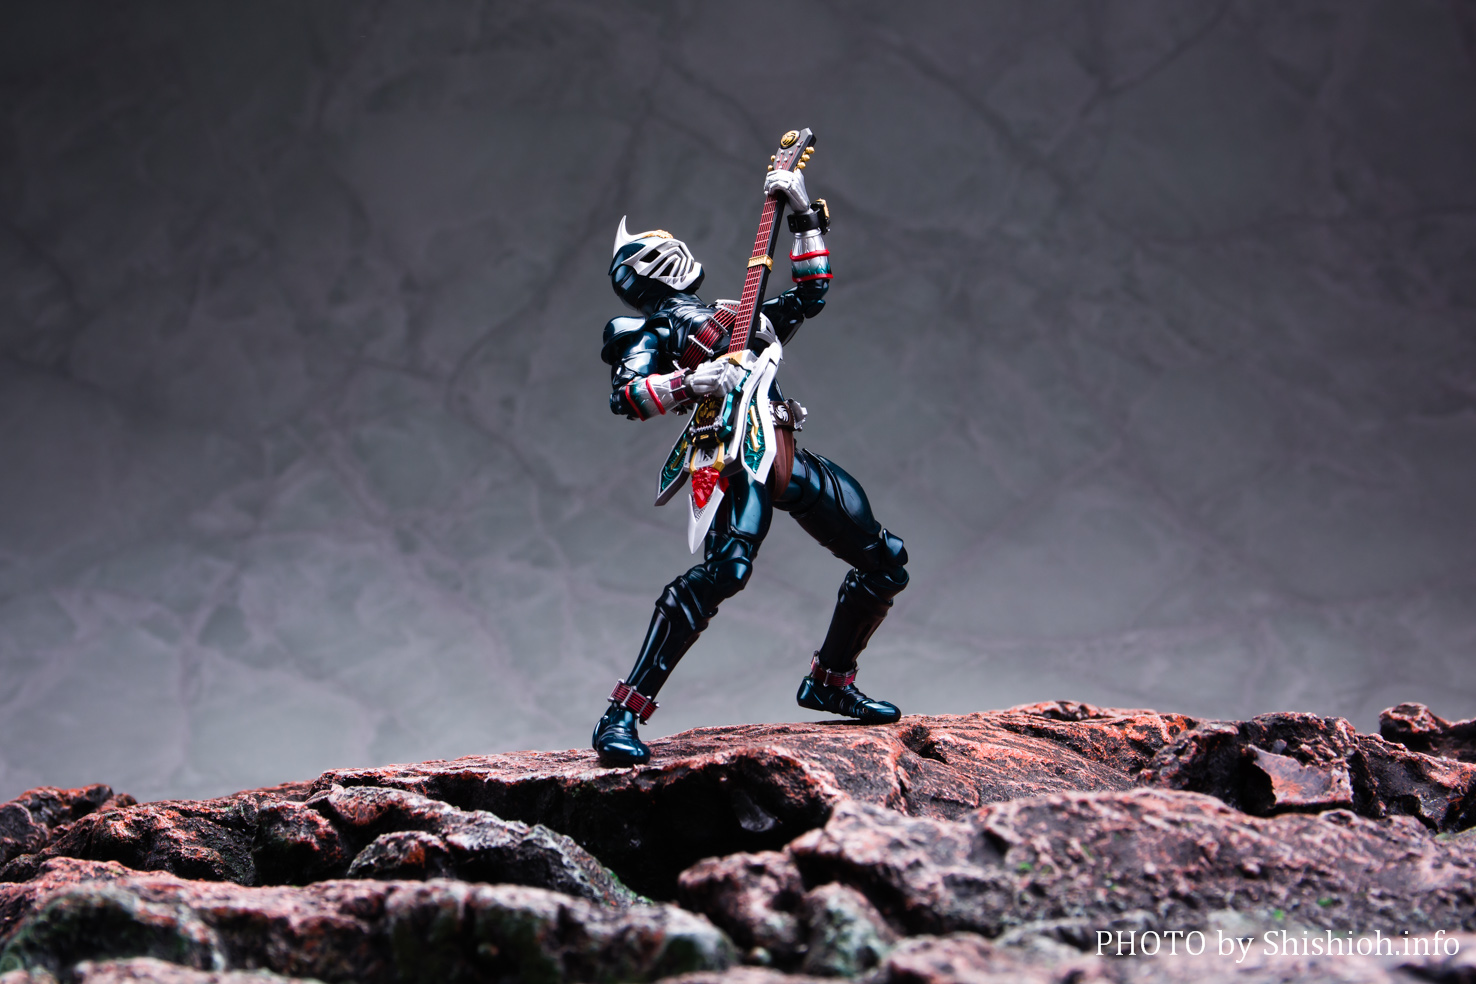 S.H.Figuarts(真骨彫製法) 仮面ライダー轟鬼